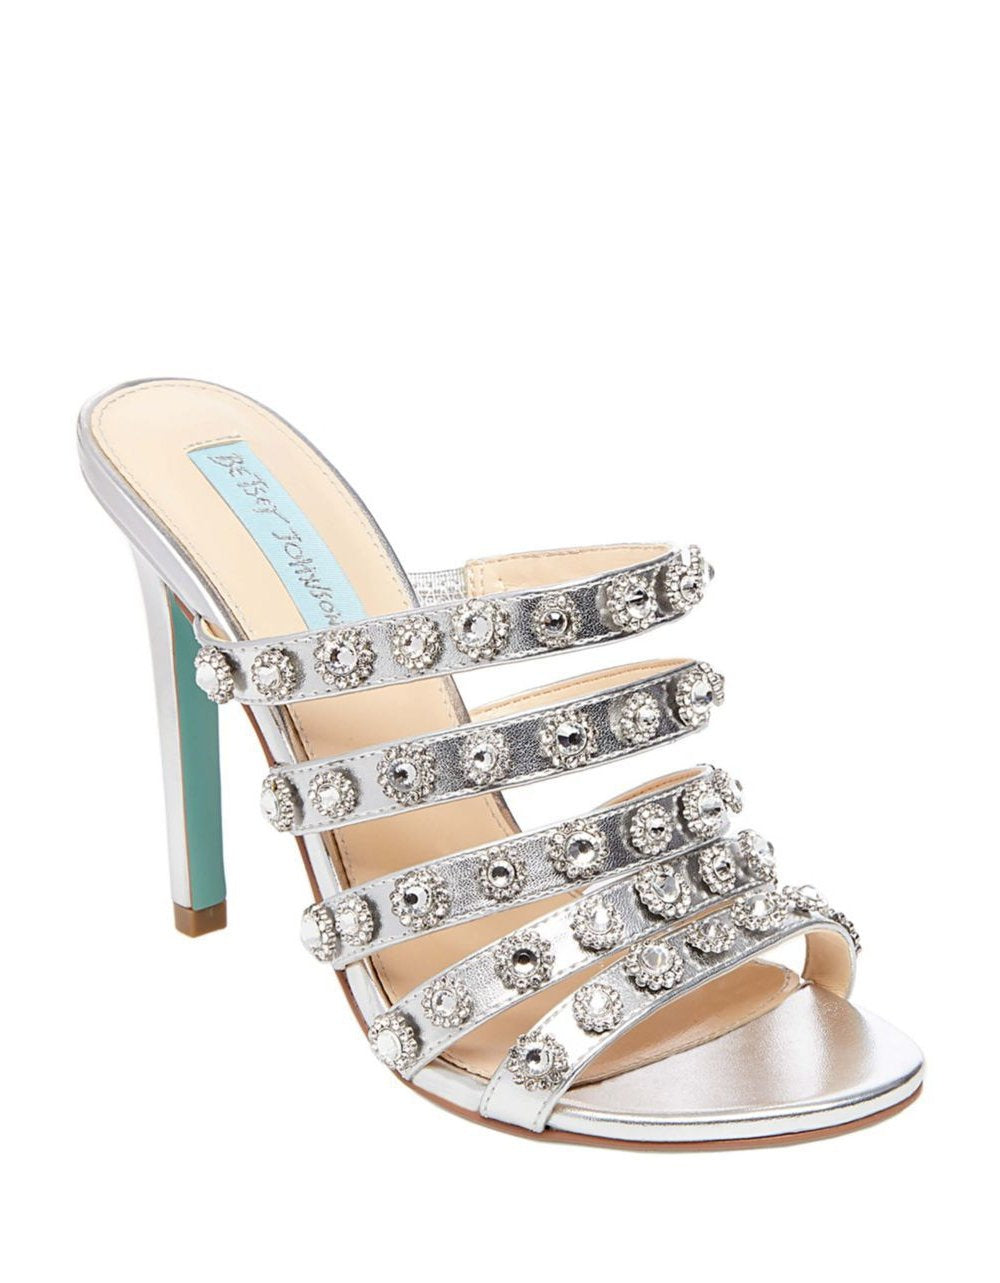 SB-JOVI SILVER METALLIC - SHOES - Betsey Johnson